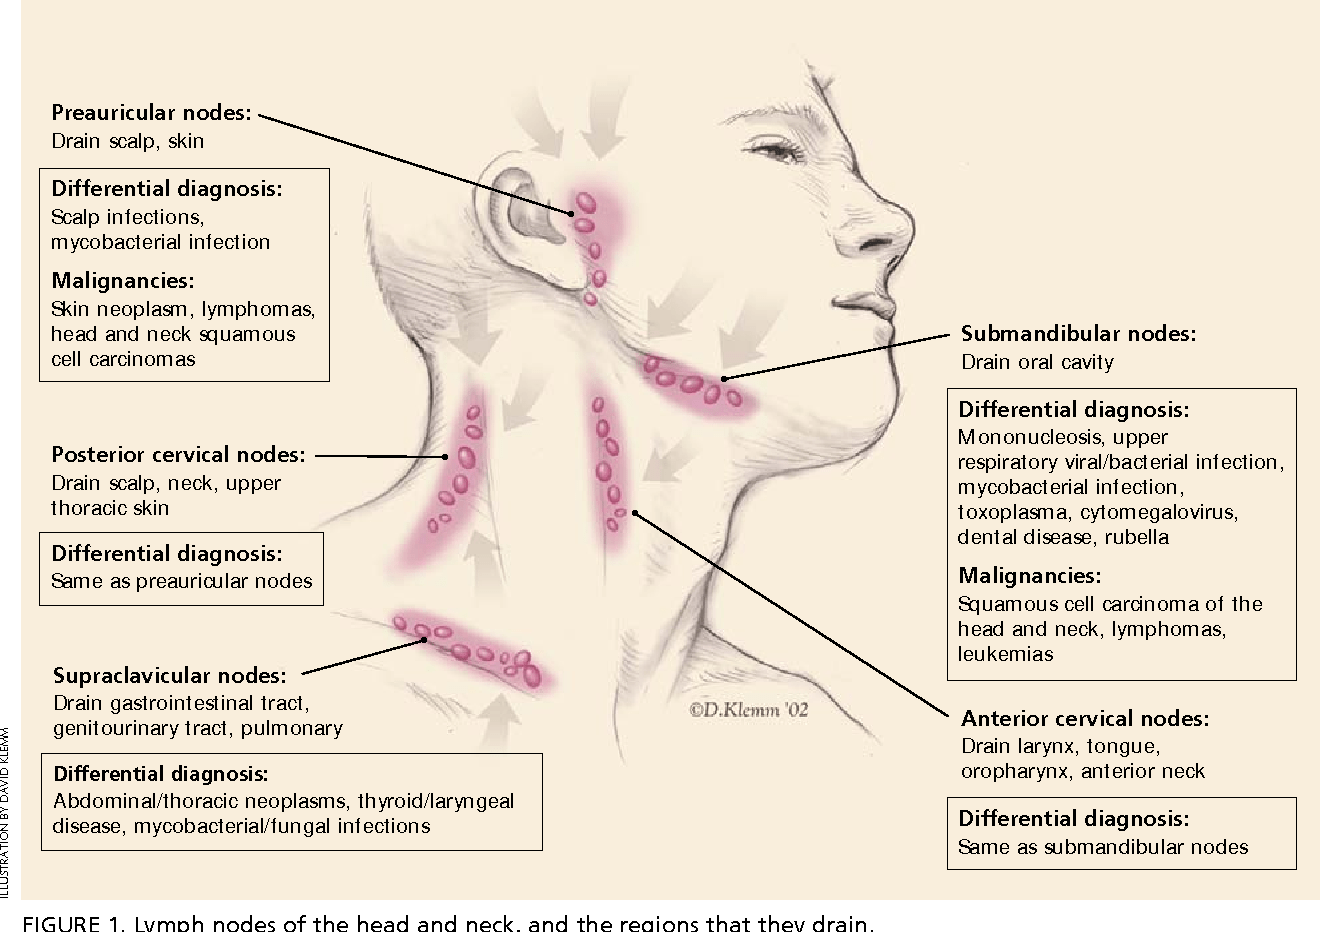 hight resolution of lymph nodes of the head and neck and the regions that they